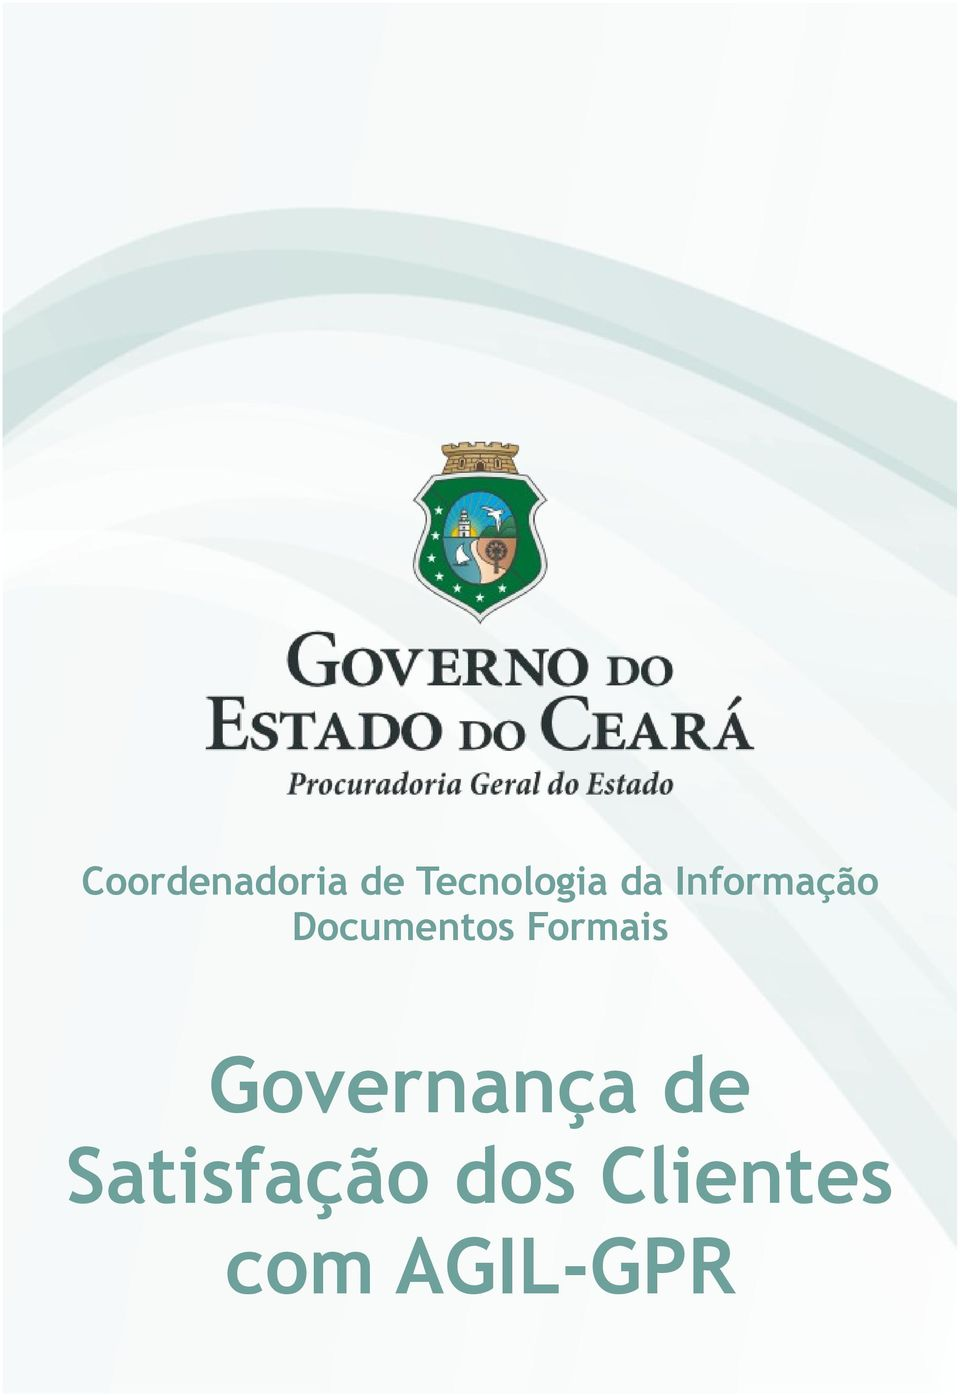 Formais Governança de